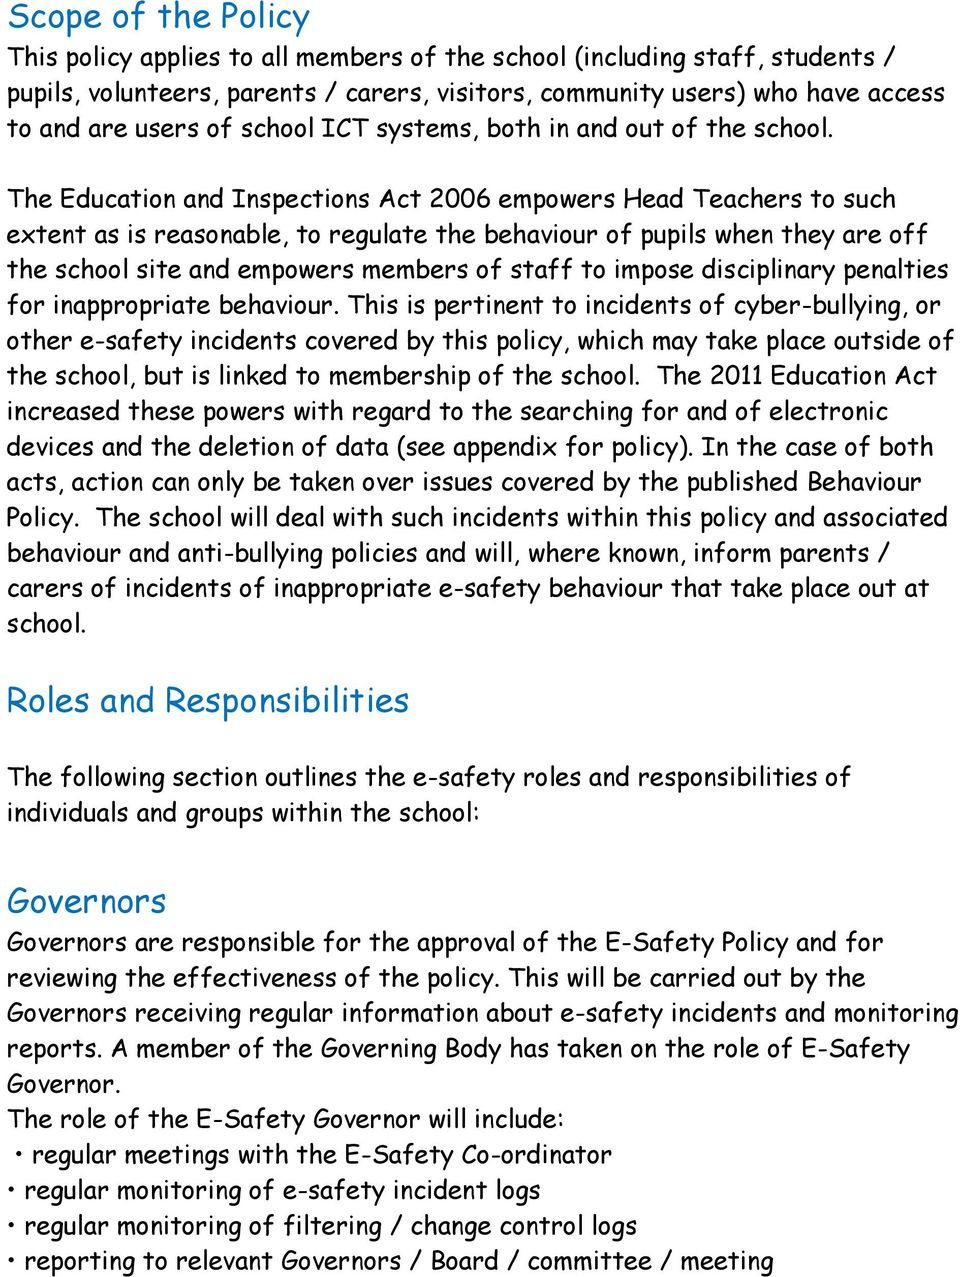 The Education and Inspections Act 2006 empowers Head Teachers to such extent as is reasonable, to regulate the behaviour of pupils when they are off the school site and empowers members of staff to